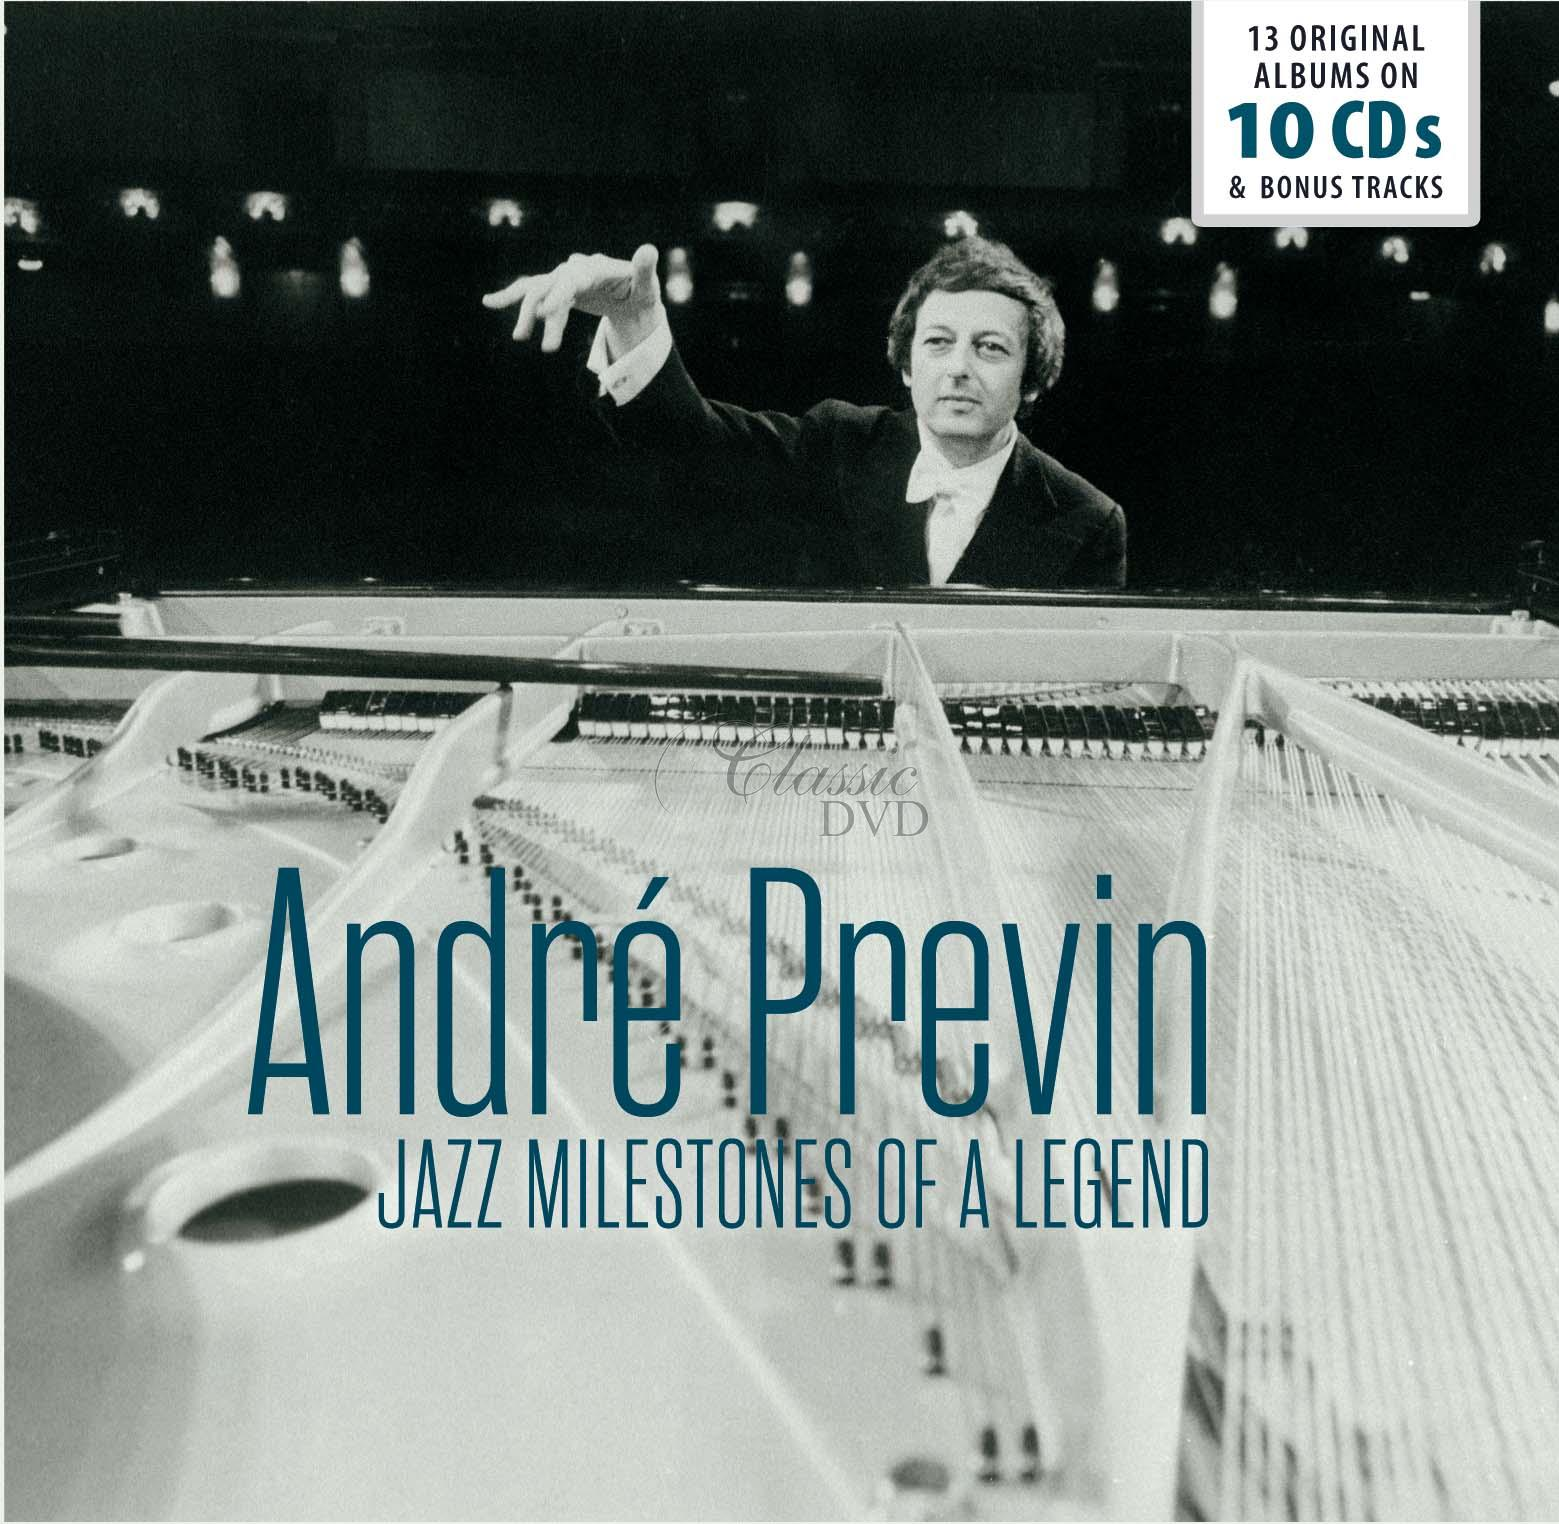 ANDRE PREVIN: Jazz Milestones Of A Legend - 13 Original Albums (10CD)